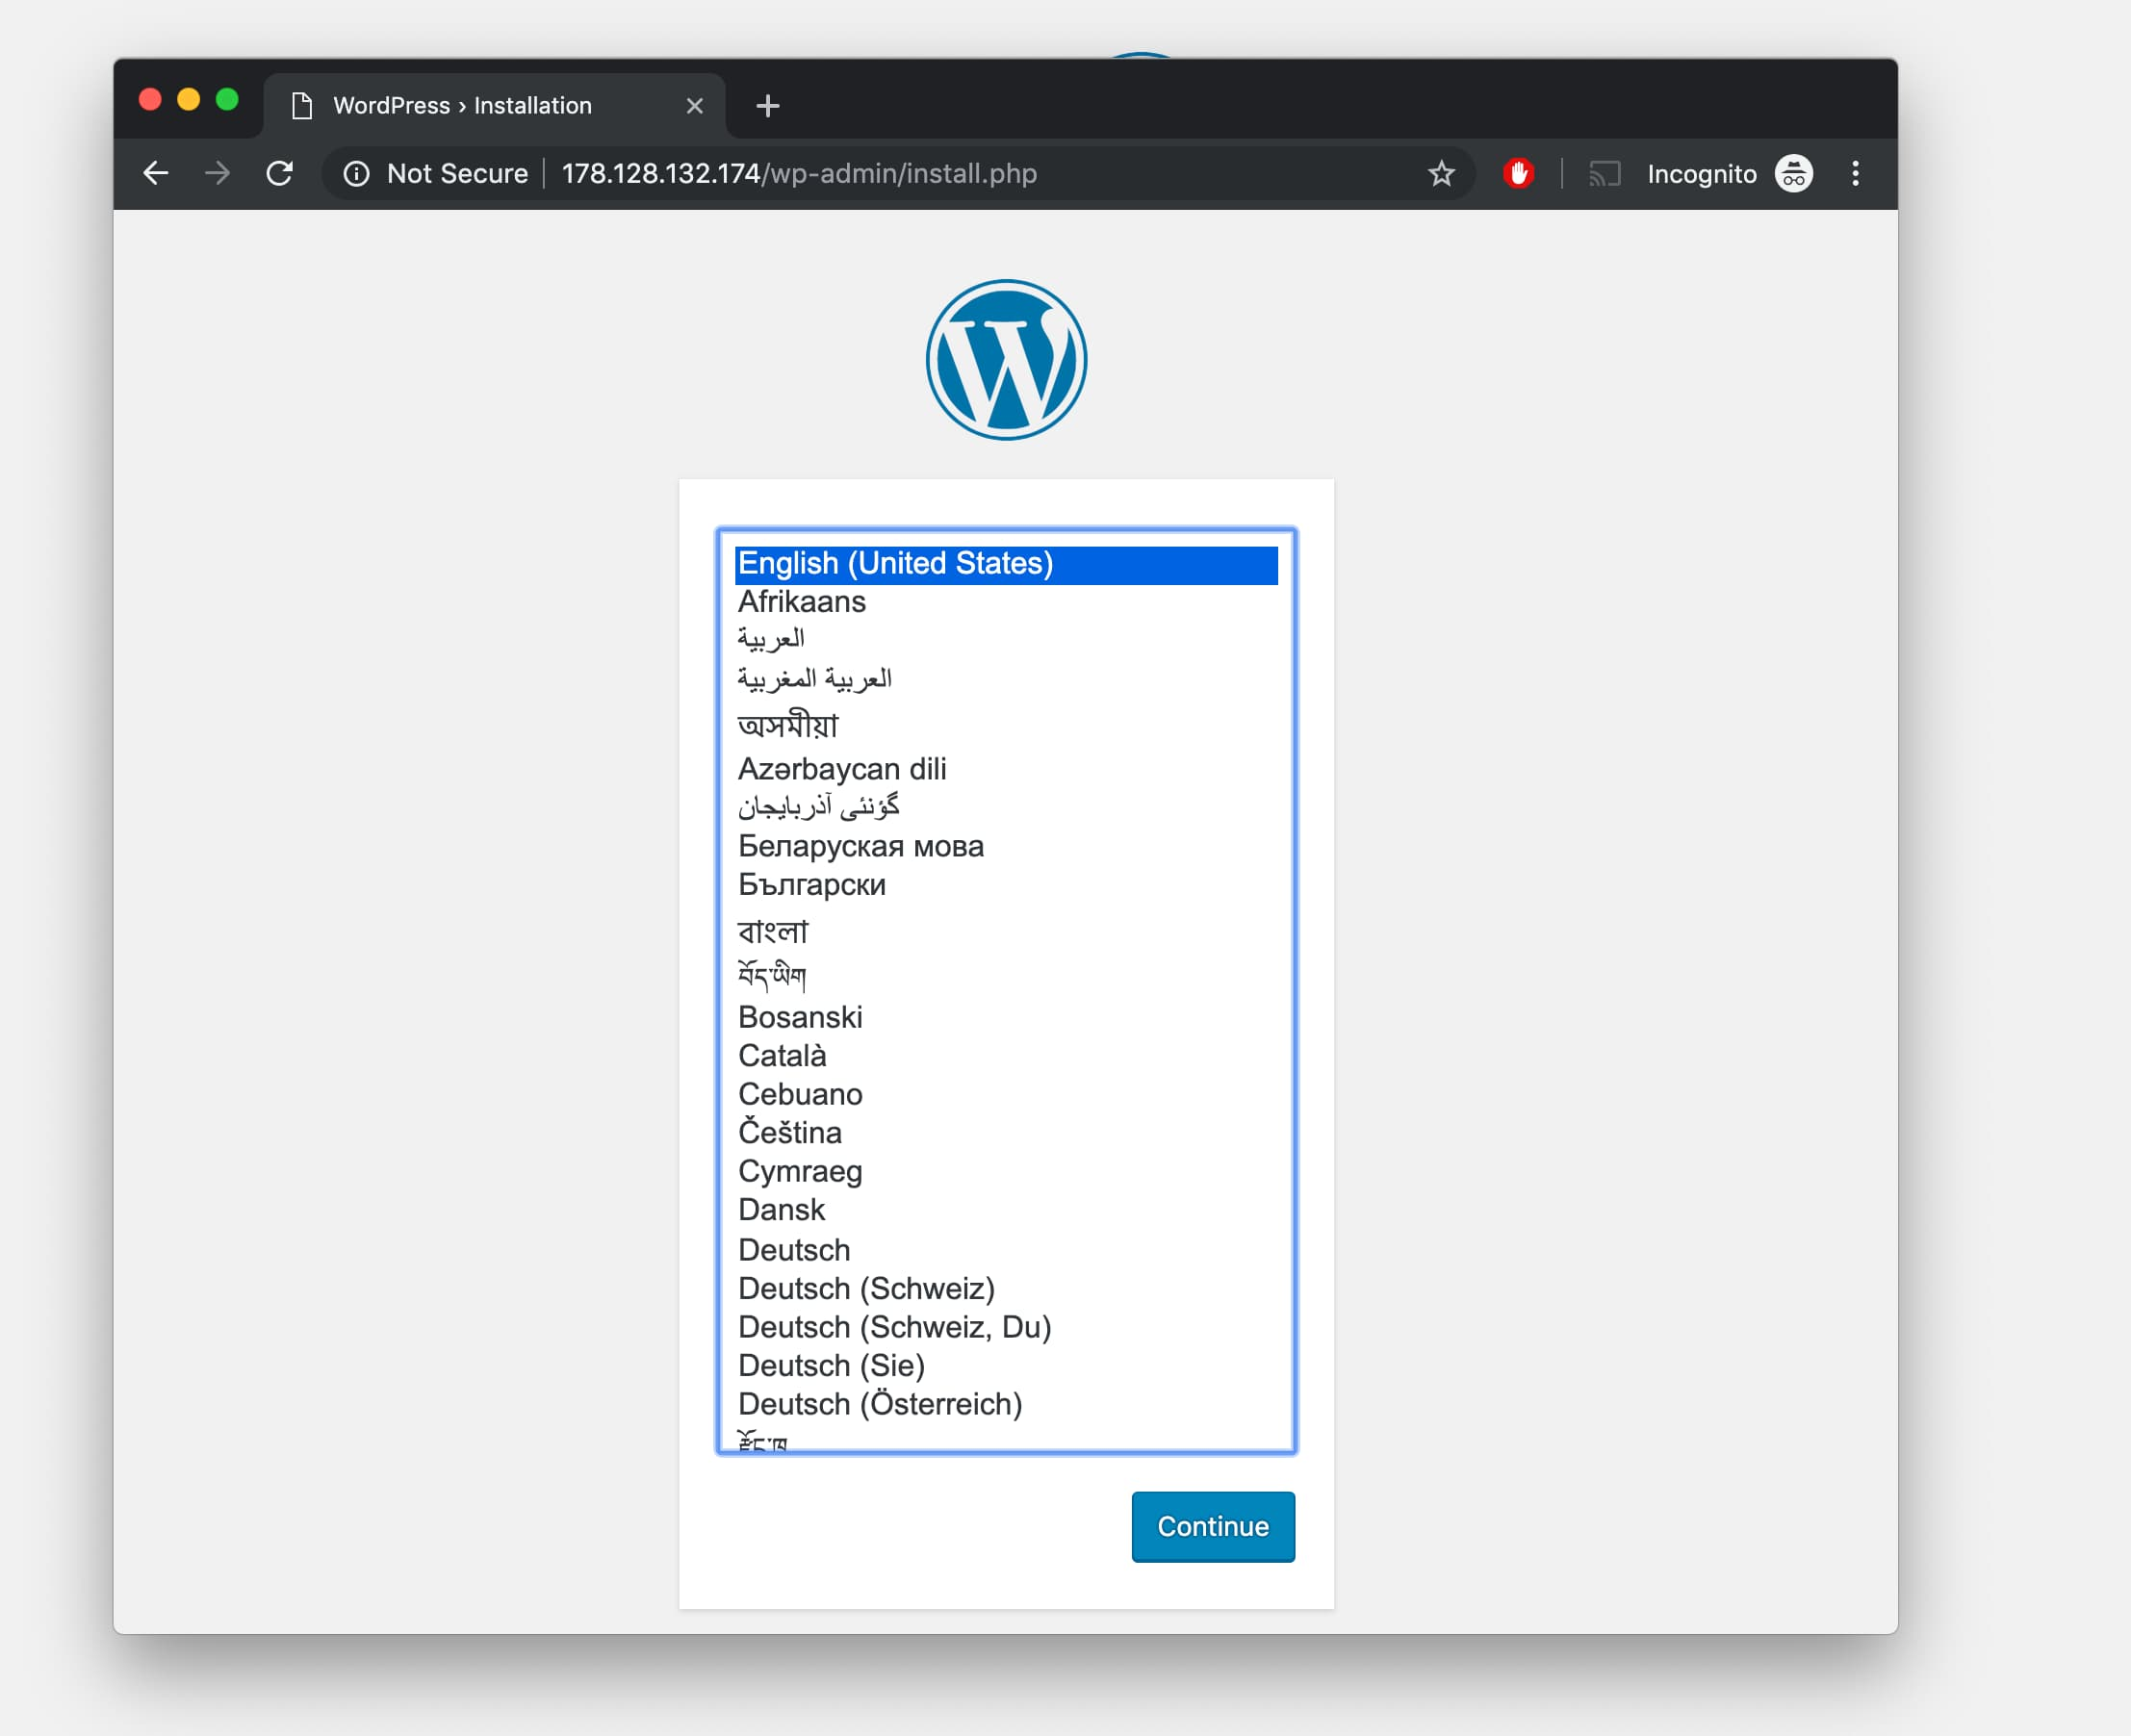 WordPress Installation Screen After Setup